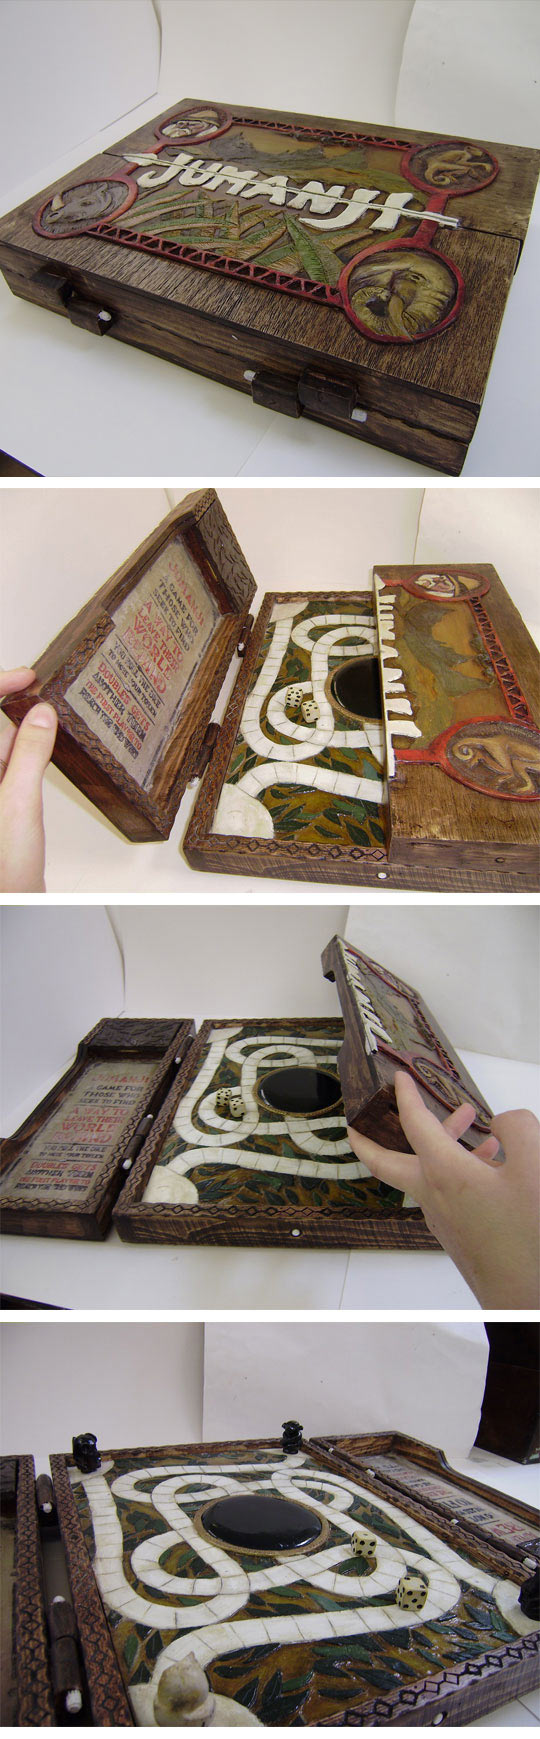 Amazing Handmade Jumanji Game Box